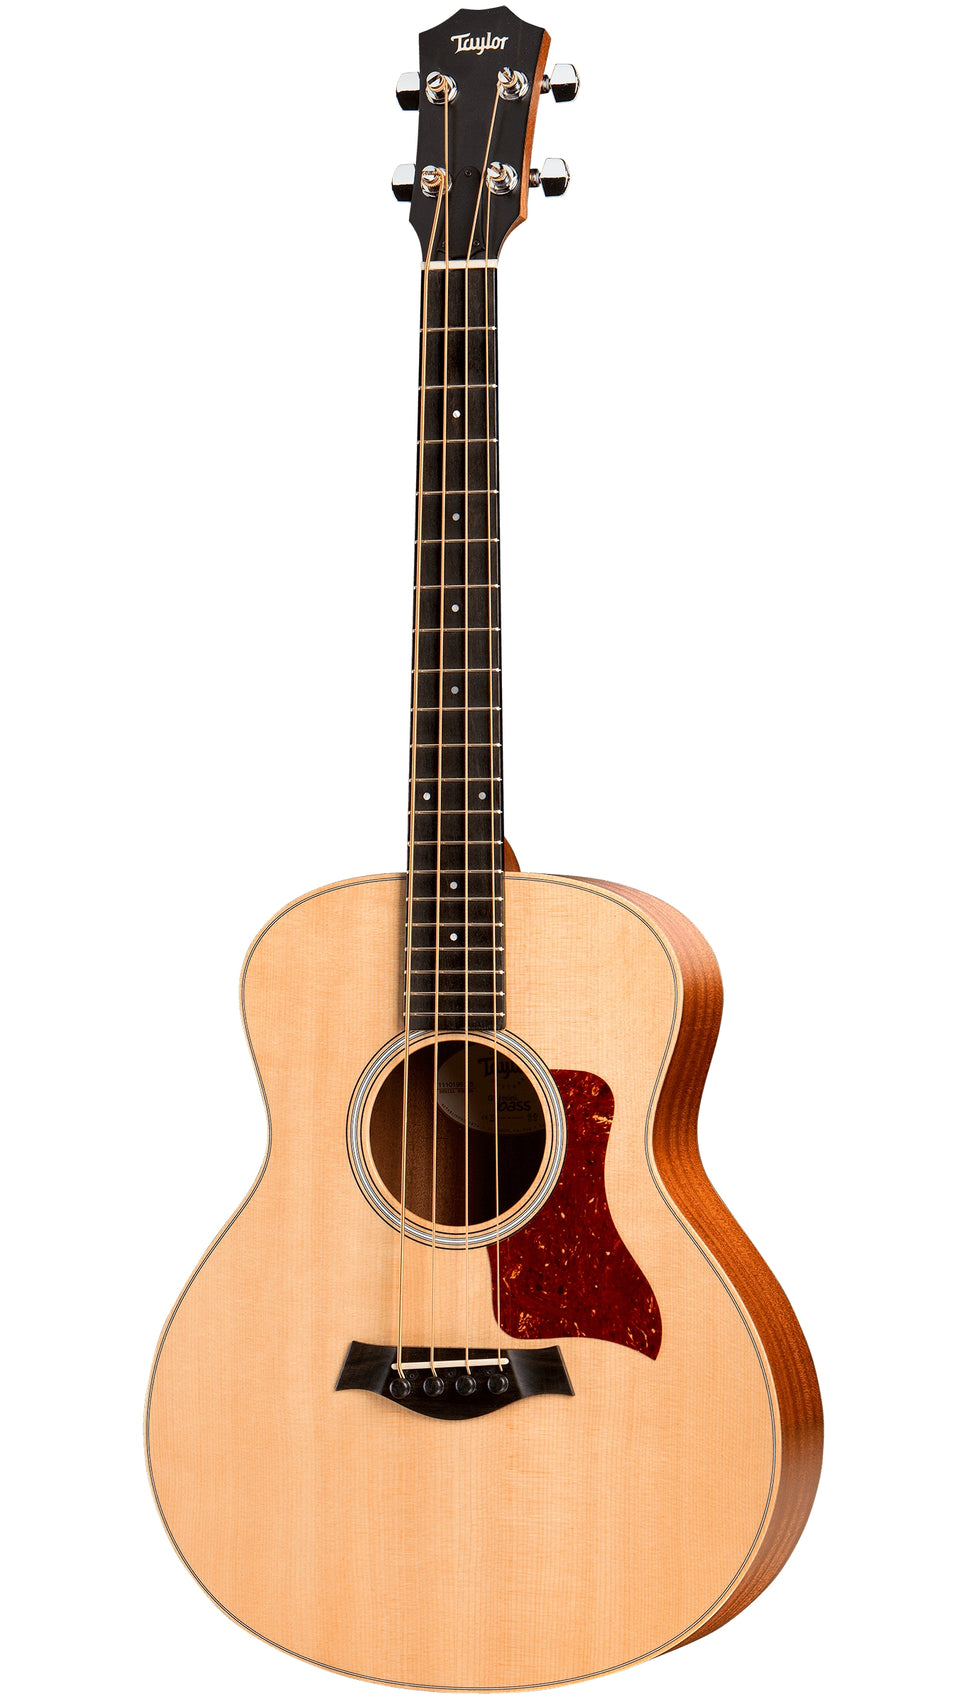 Taylor GS MINI-e Bass Acoustic Electric Bass Guitar